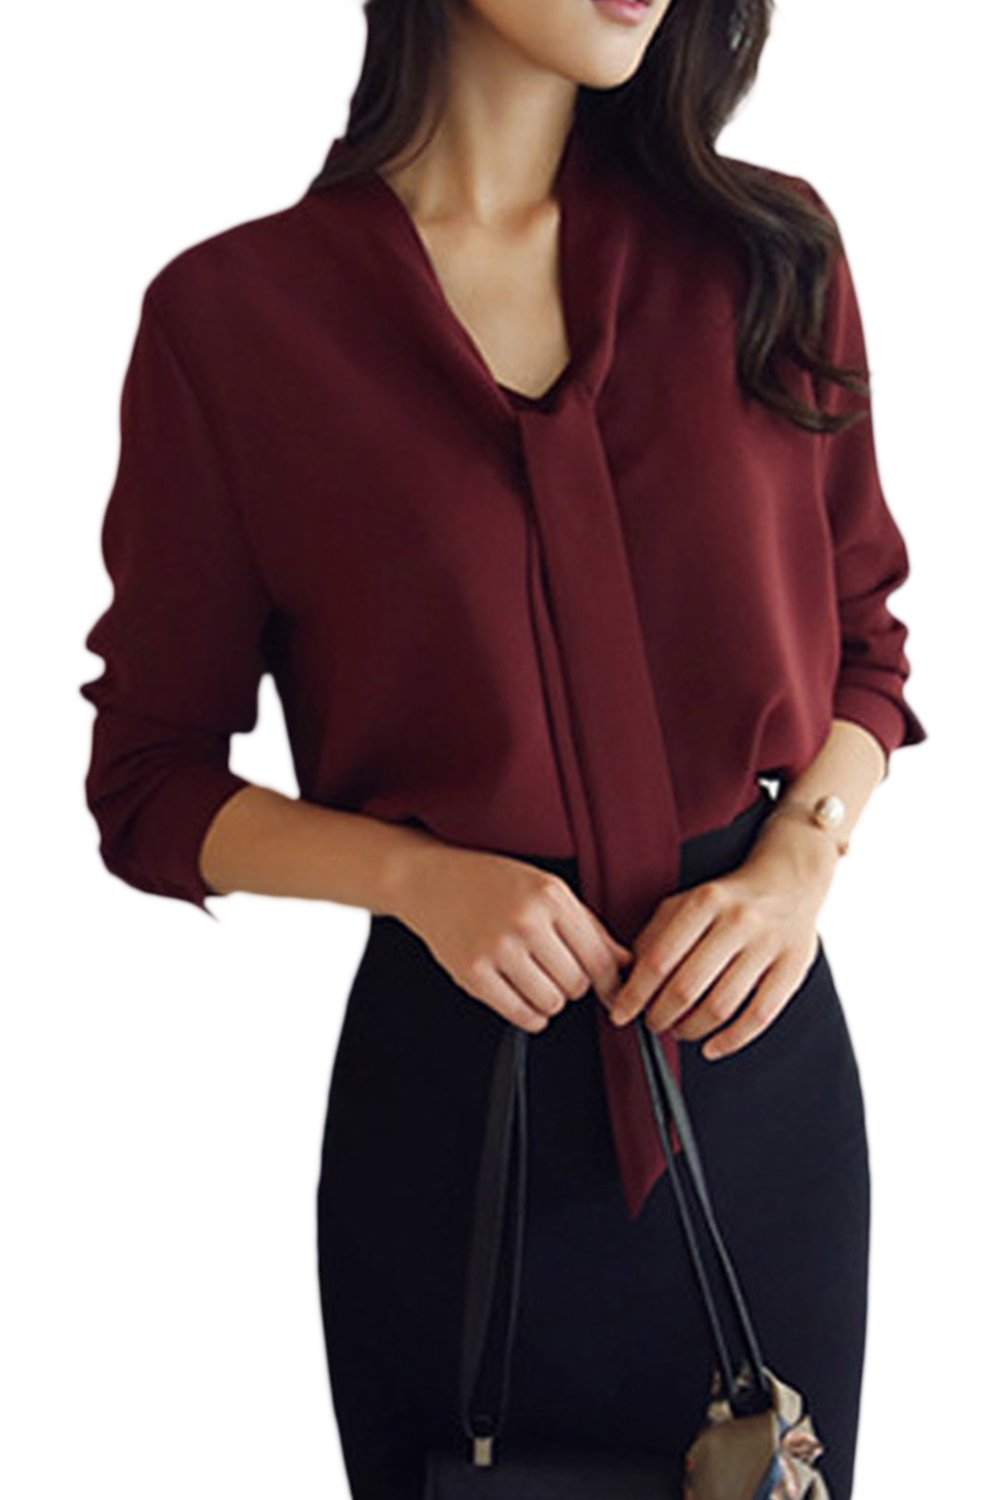 Women's T Shirt Knot Front Long Sleeve Patchwork Single Breasted Office Top Blouse CAACRRJ003